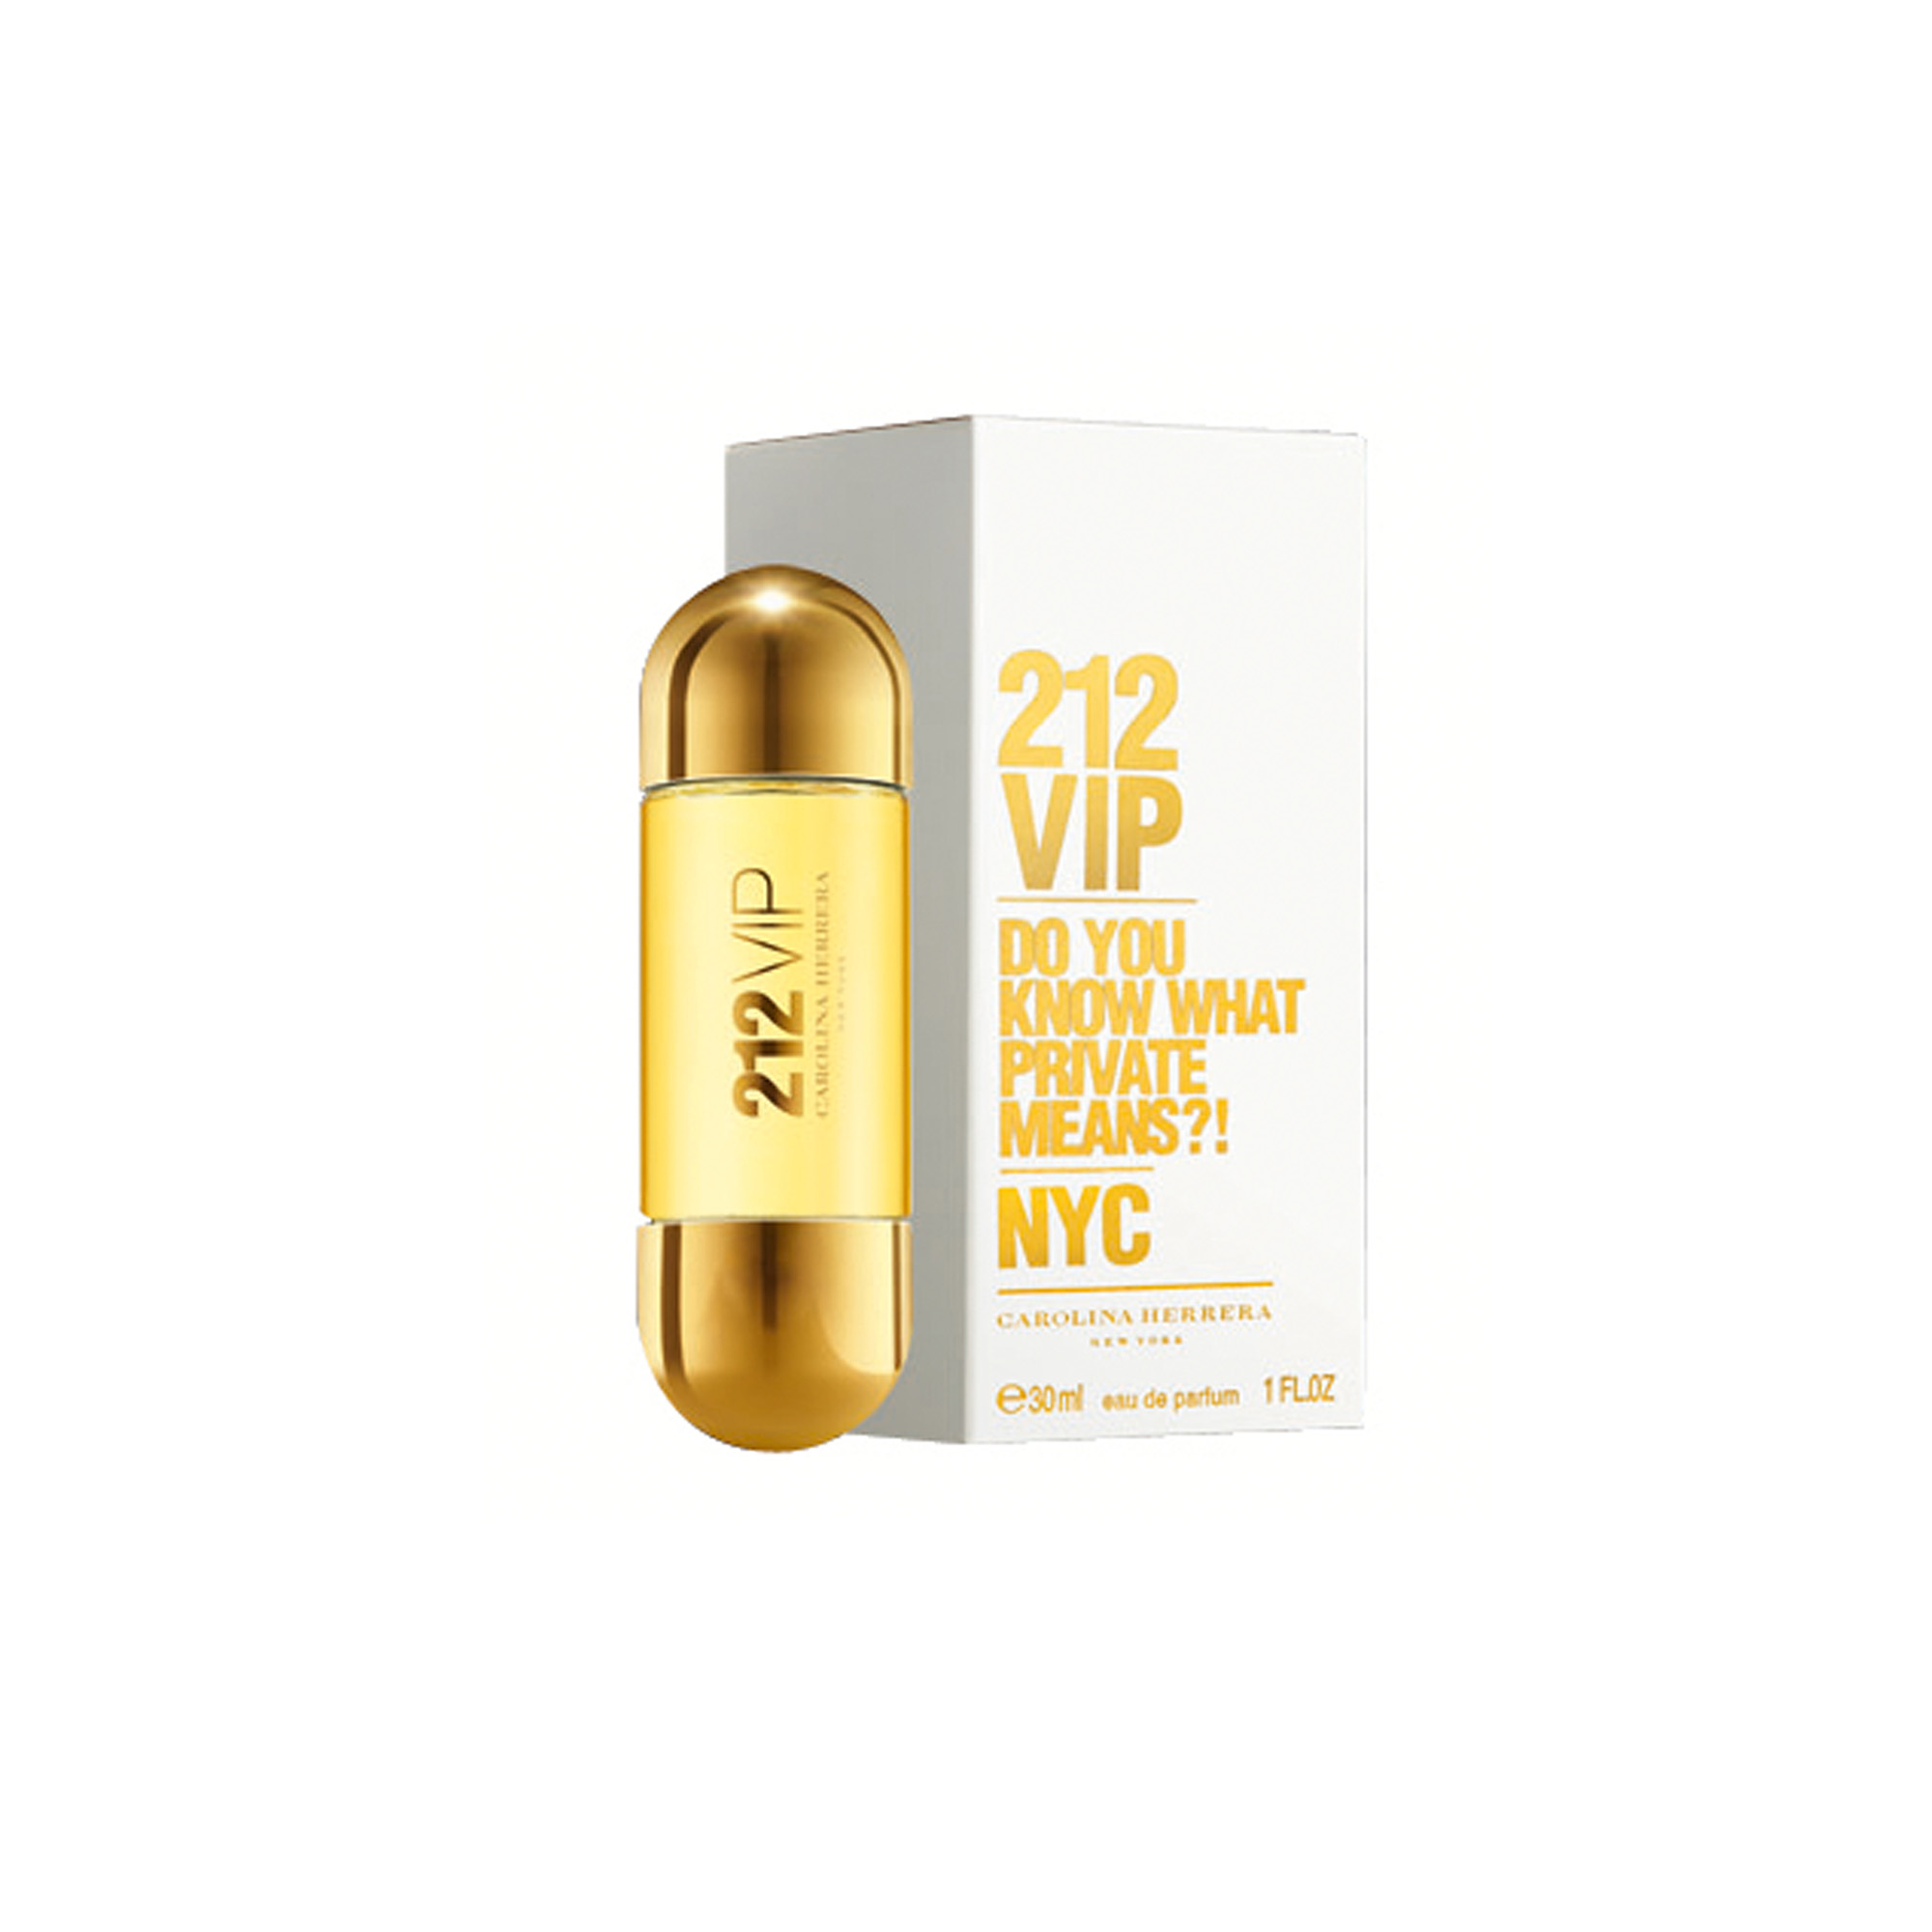 212 VIP Eau de Parfum spray 30ml